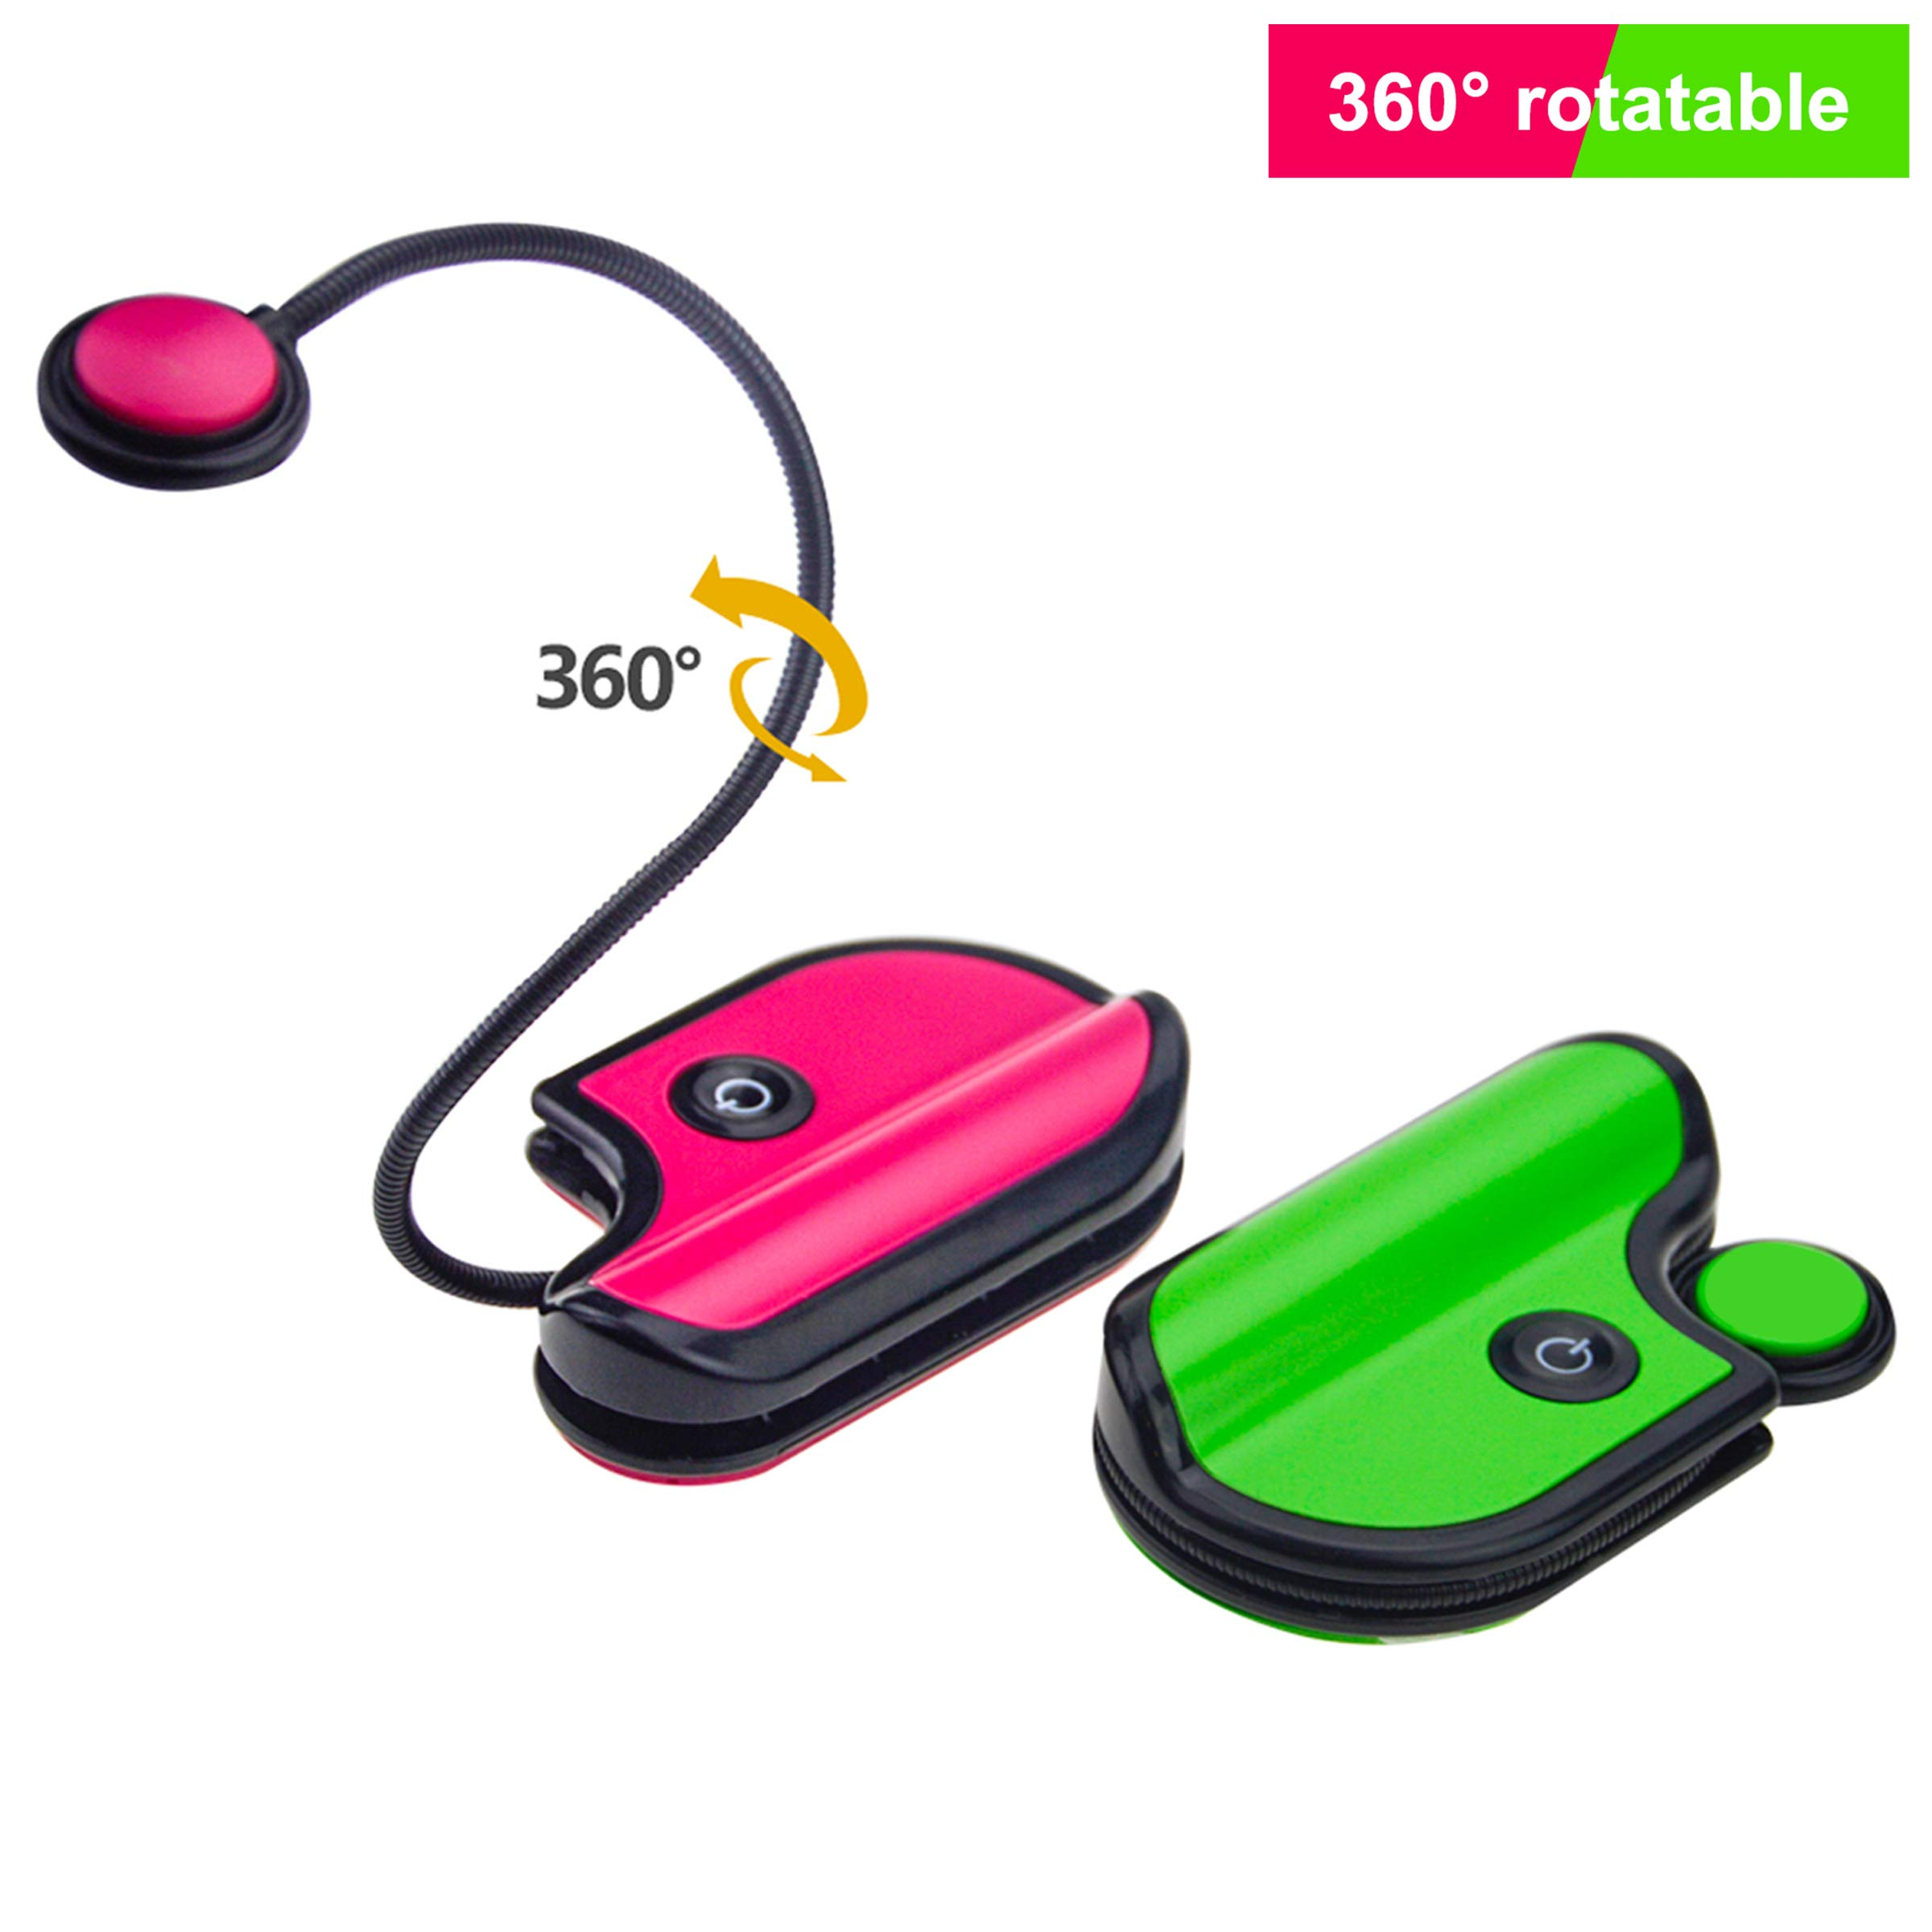 BIGLIGHT Book Reading Light Battery Operated Clip on Lights with Brightness Dimmer and Portable Folding Bed Reading Light for Kids Teens and Bookworms - 2 Pack Mini Size.(Green and Pink)